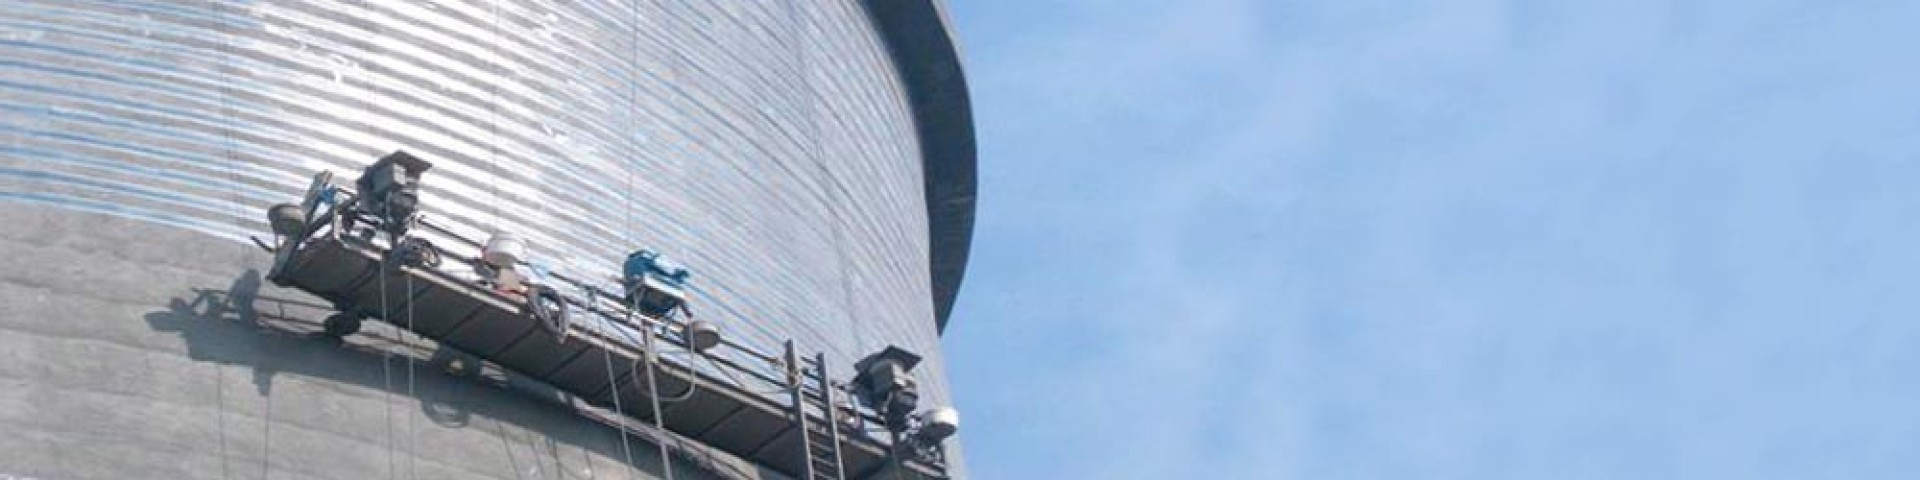 Strengthening of cooling towers with carbon fiber wraps